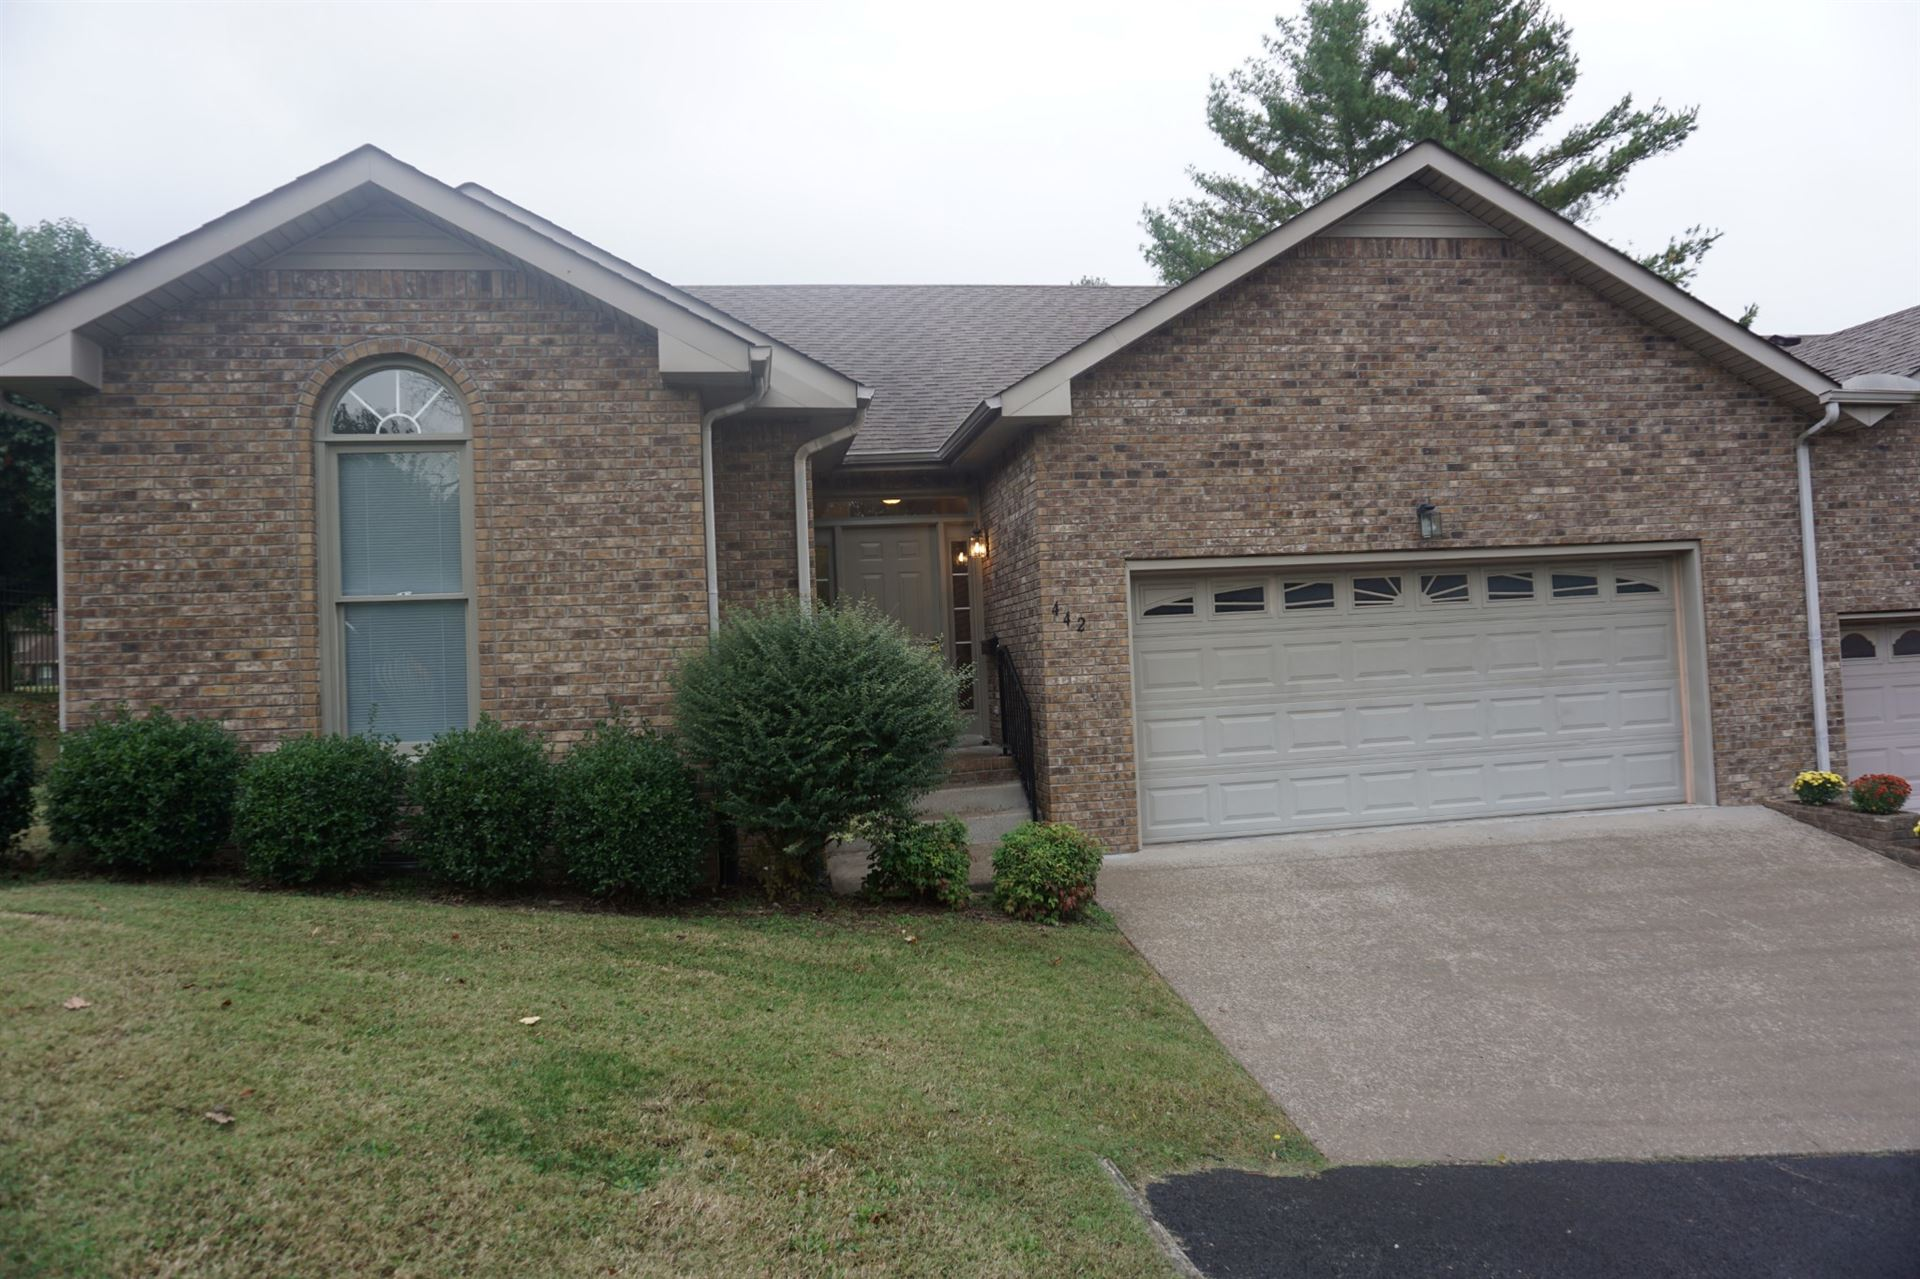 442 Country Club Ct, Clarksville, TN 37043 - MLS#: 2201050